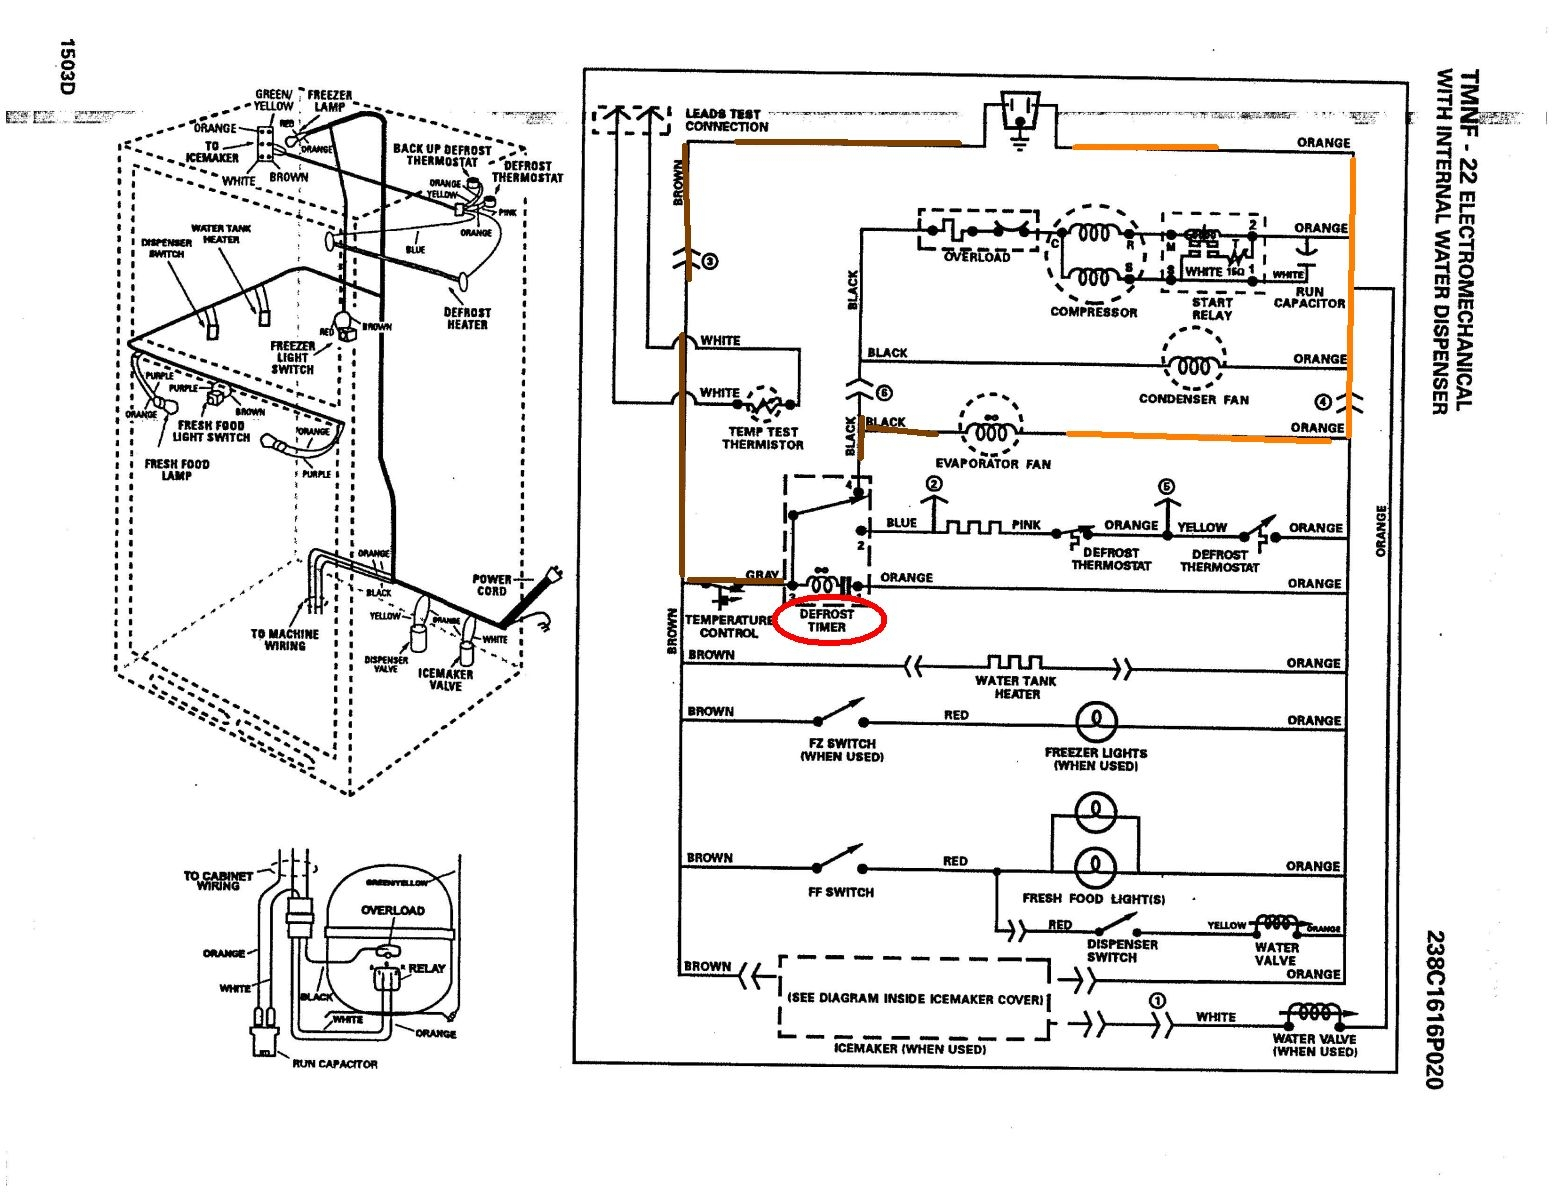 Ge Oven Wiring Diagram Jdp37 - General Wiring Diagrams Whirlpool Tub Wiring Diagram on